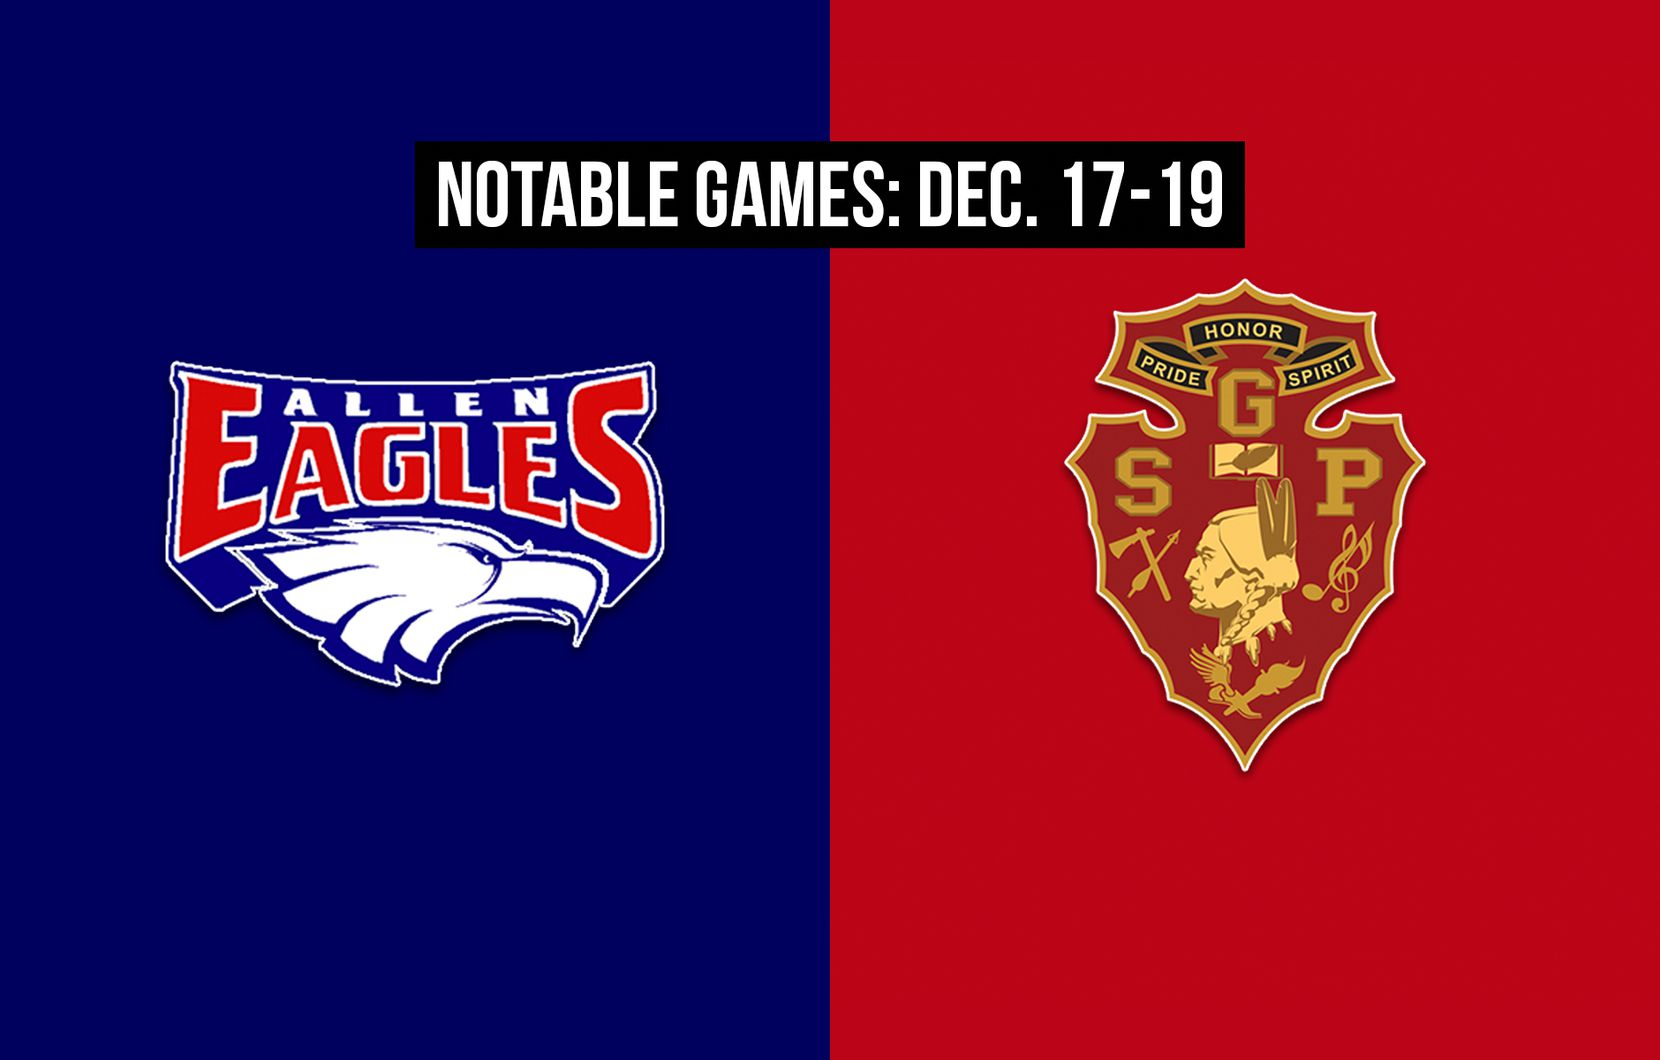 Notable games for the week of Dec. 17-19 of the 2020 season: Allen vs. South Grand Prairie.